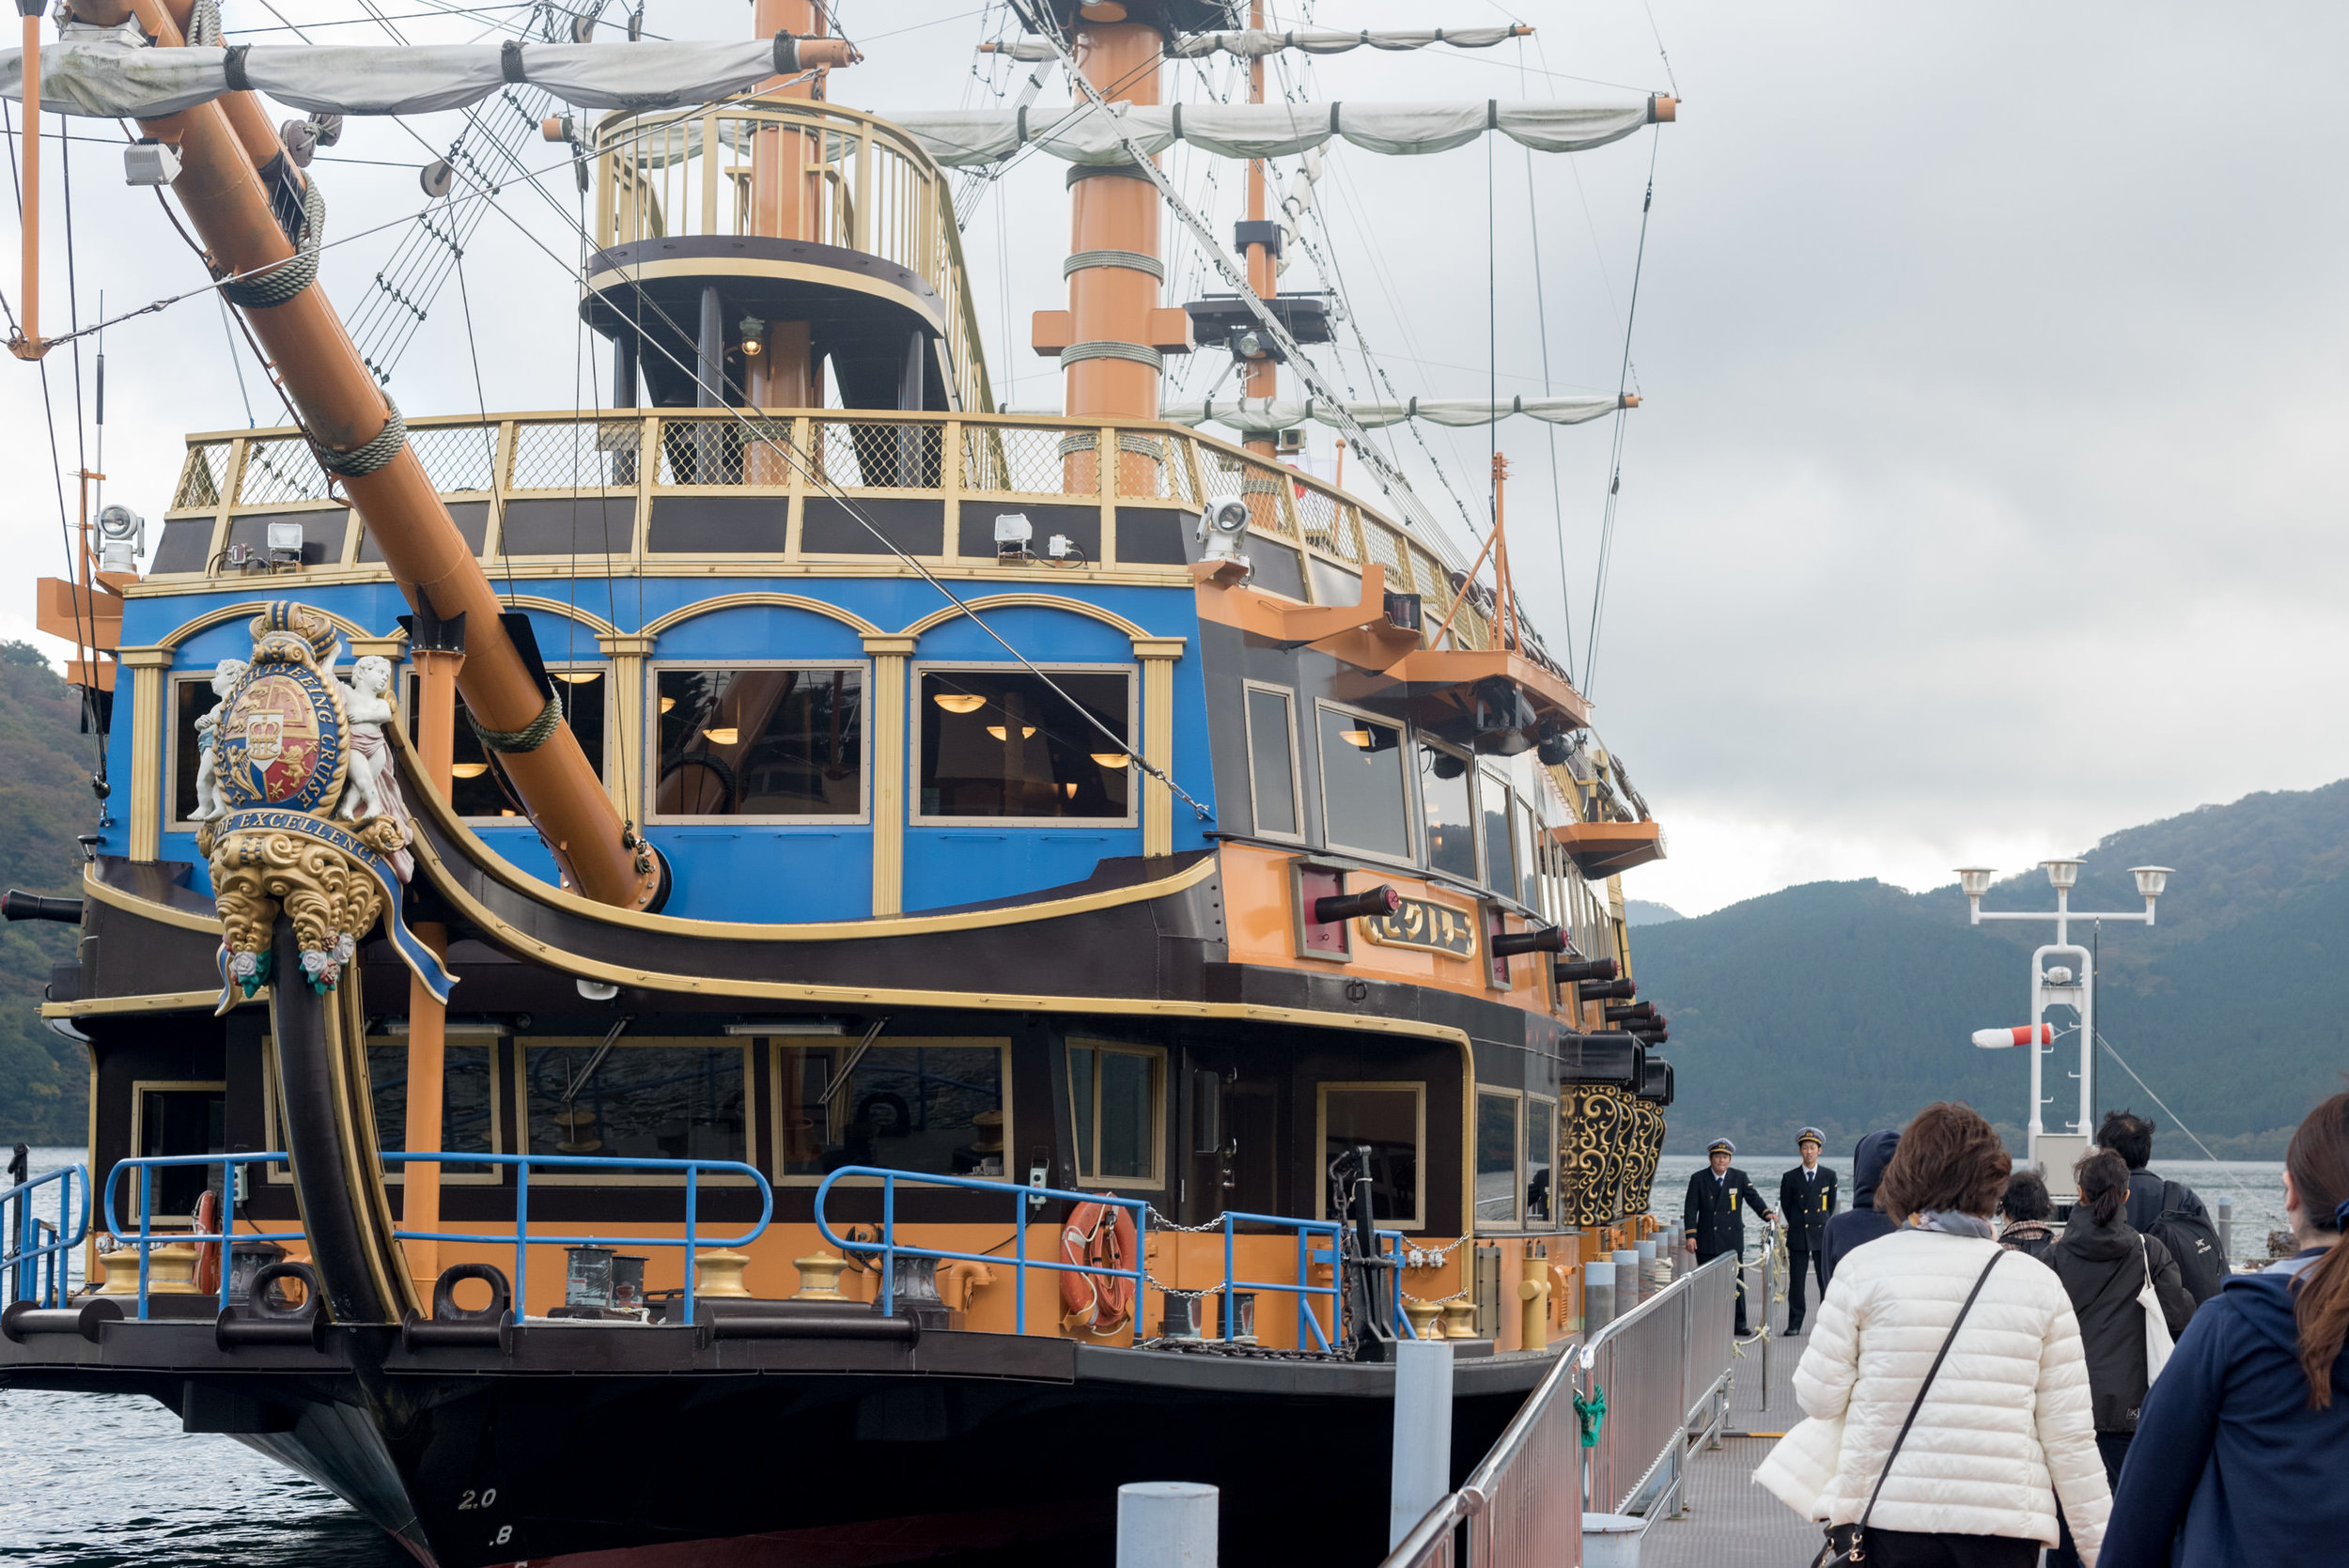 Hakone Sightseeing Cruise  Travel Guide for Day-trip to Hakone from Tokyo